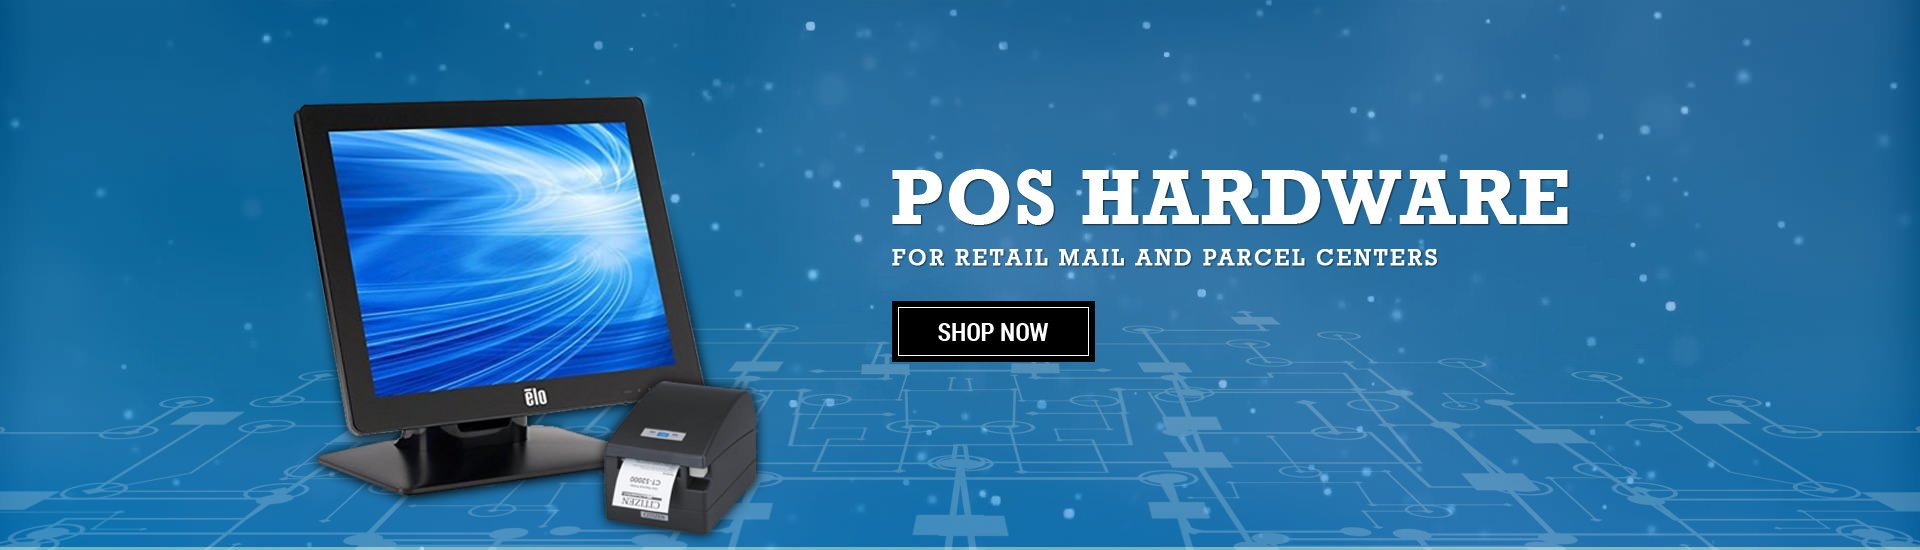 POS Hardware for Retail Mall and Parcel Centers